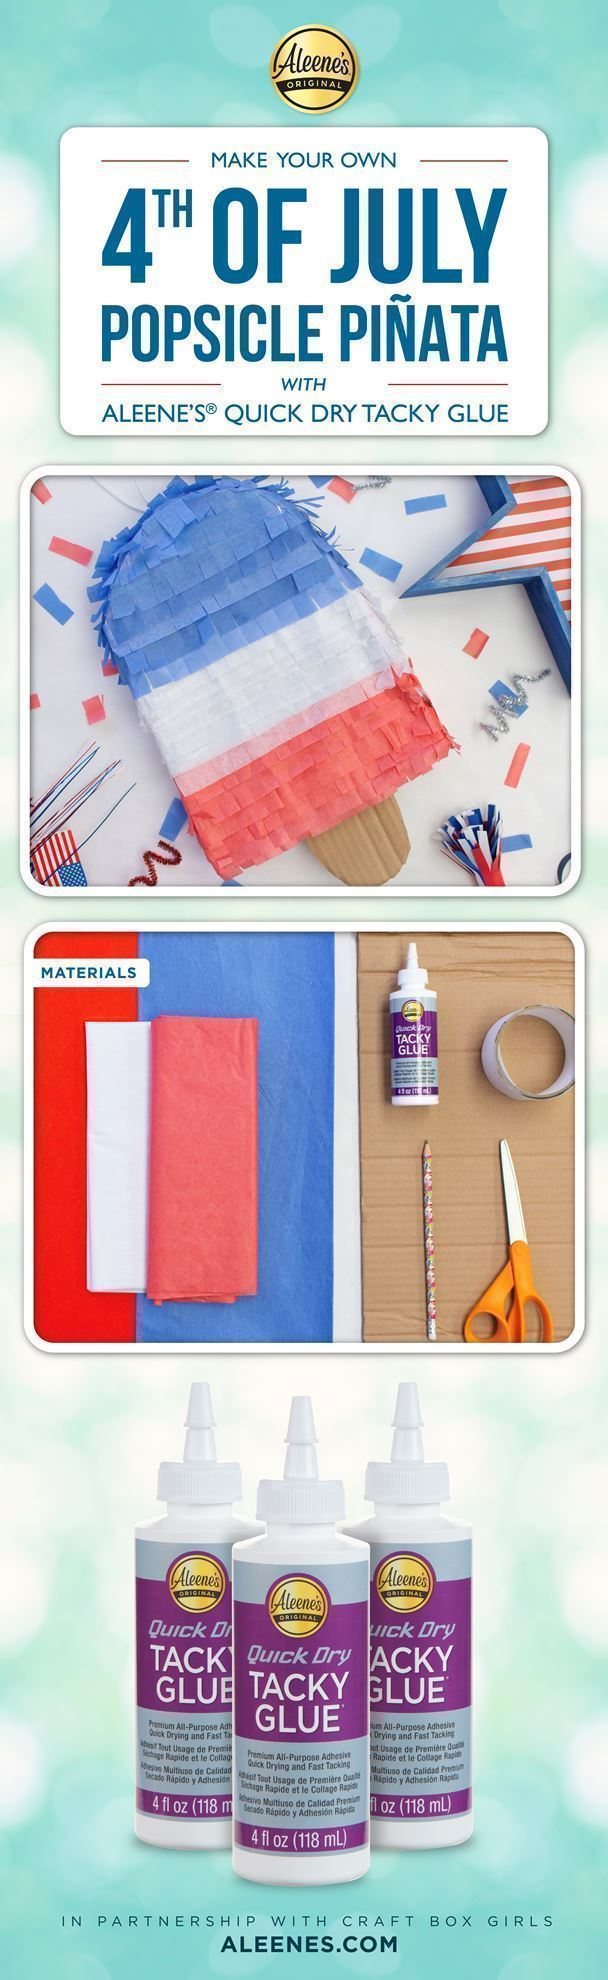 Make a Popsicle Piñata for Your 4th of July Party